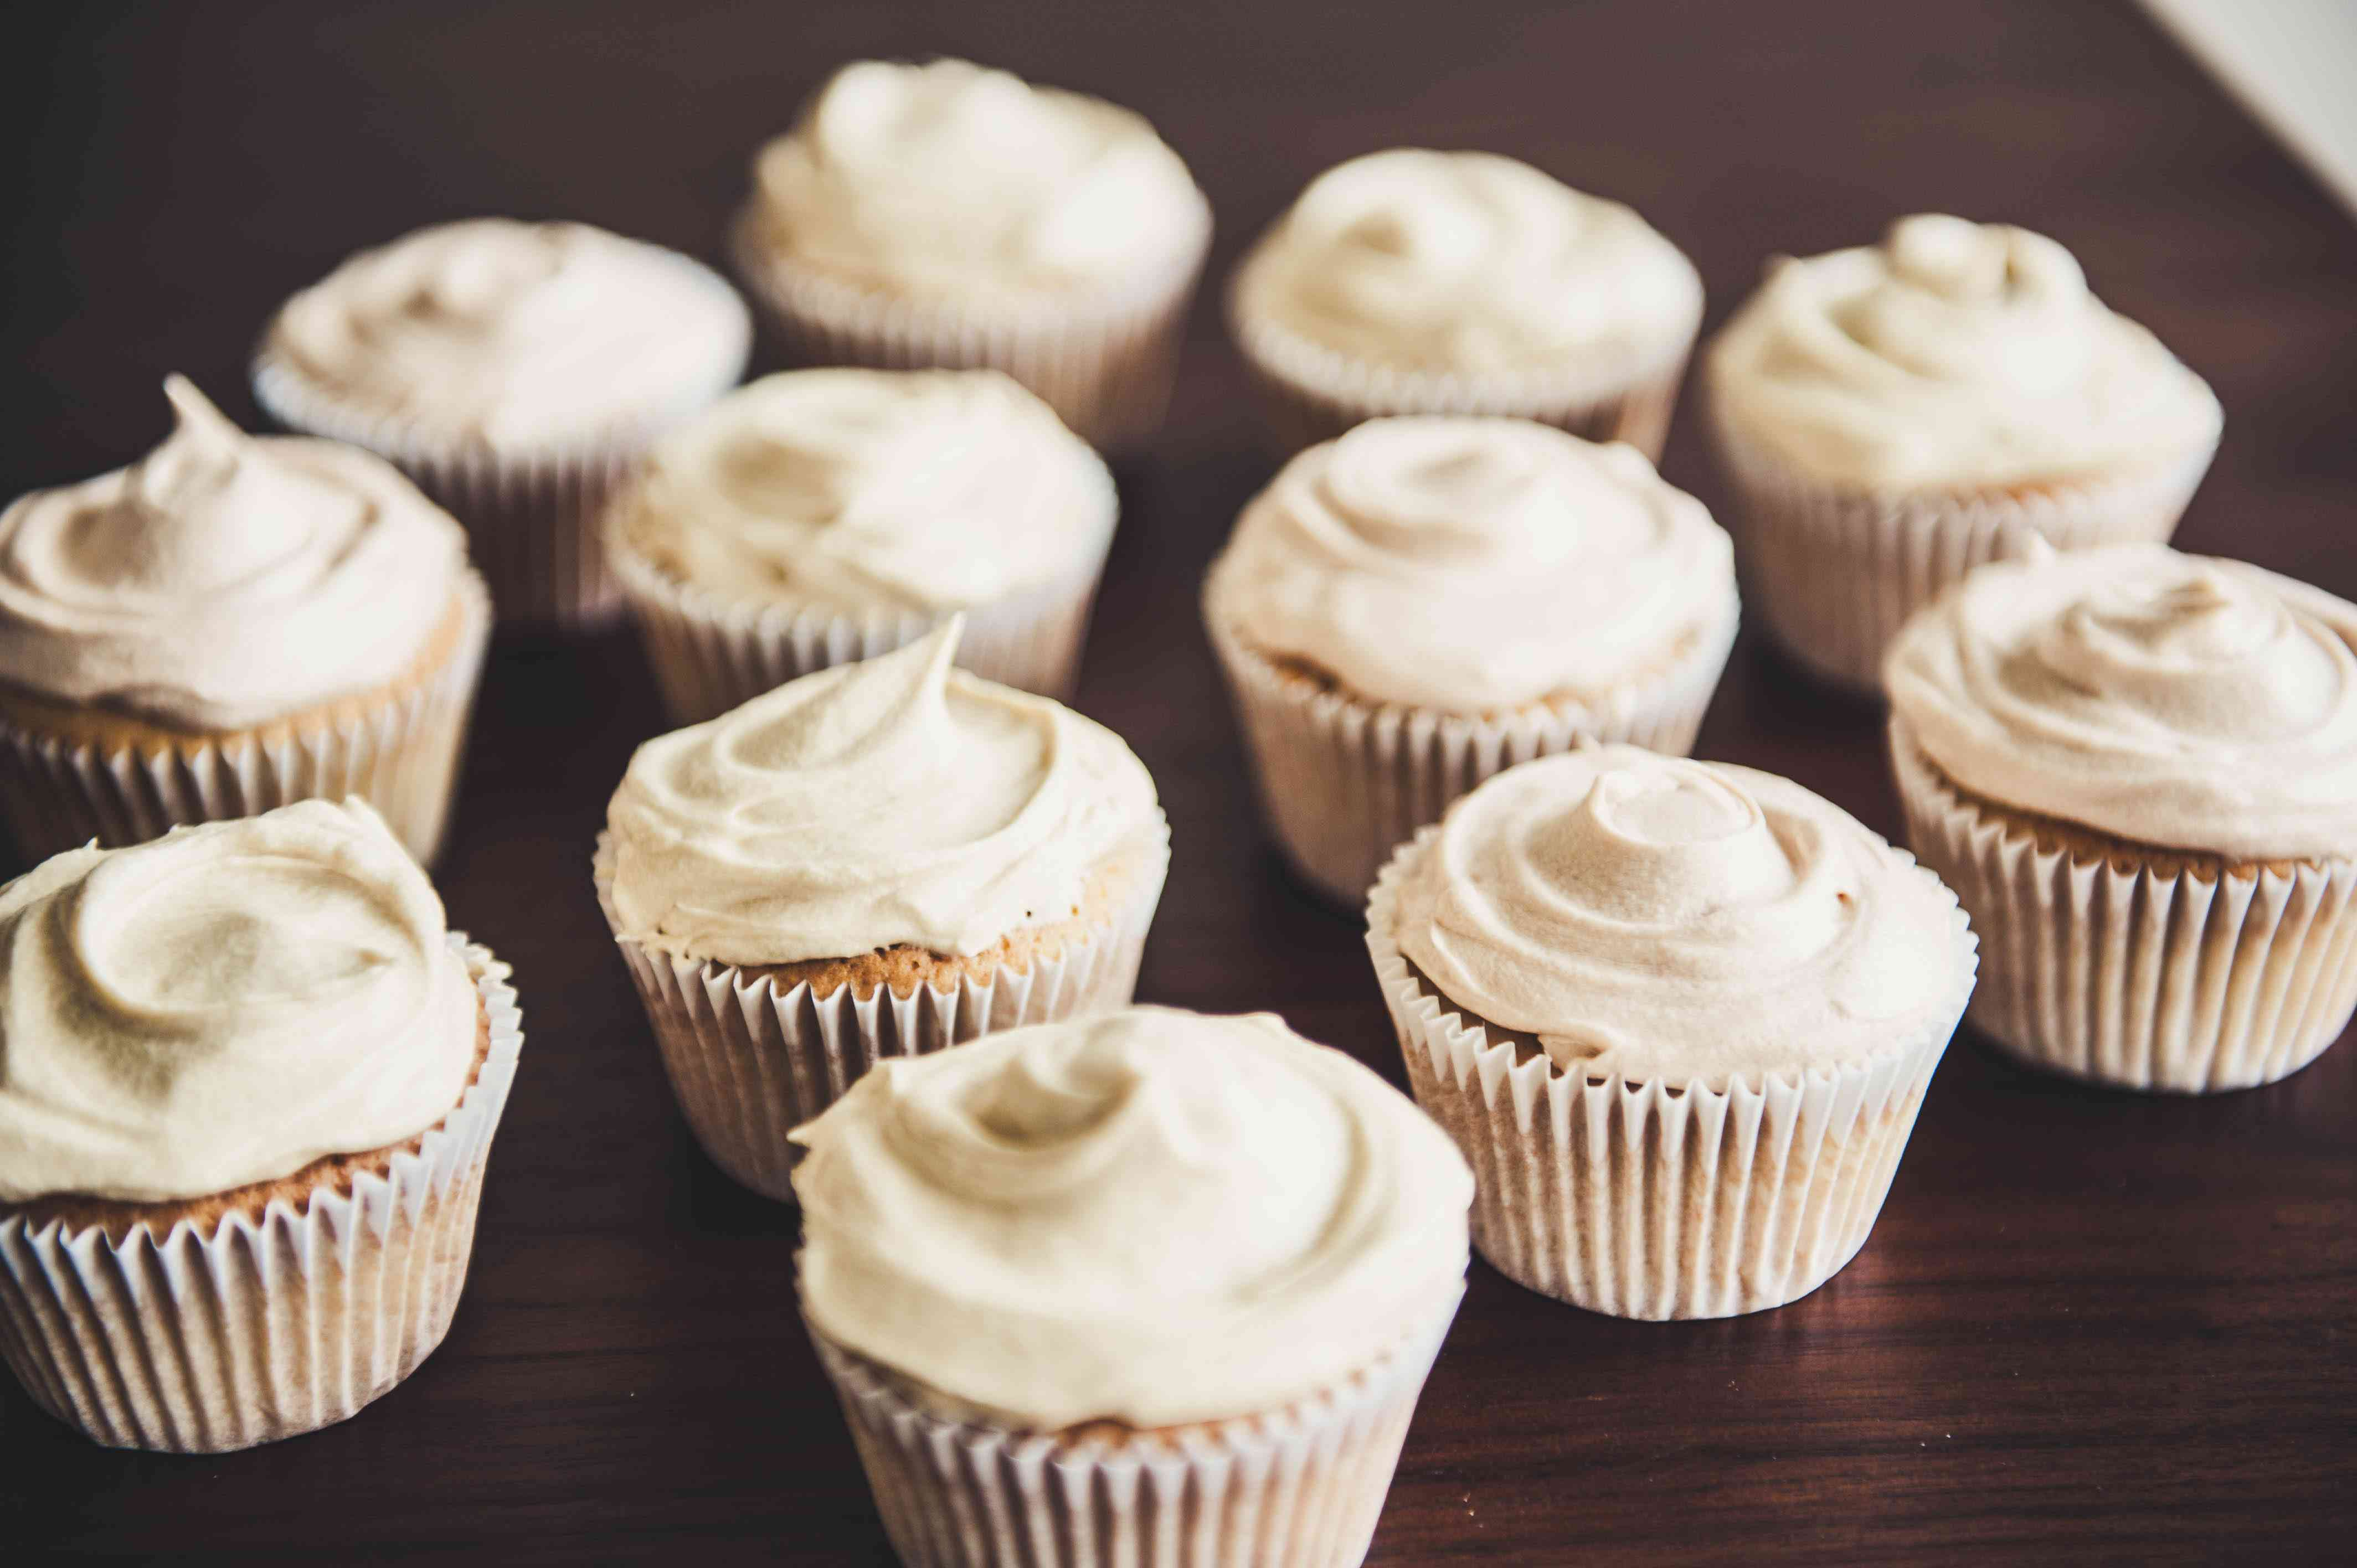 Homemade white frosted vanilla cupcakes